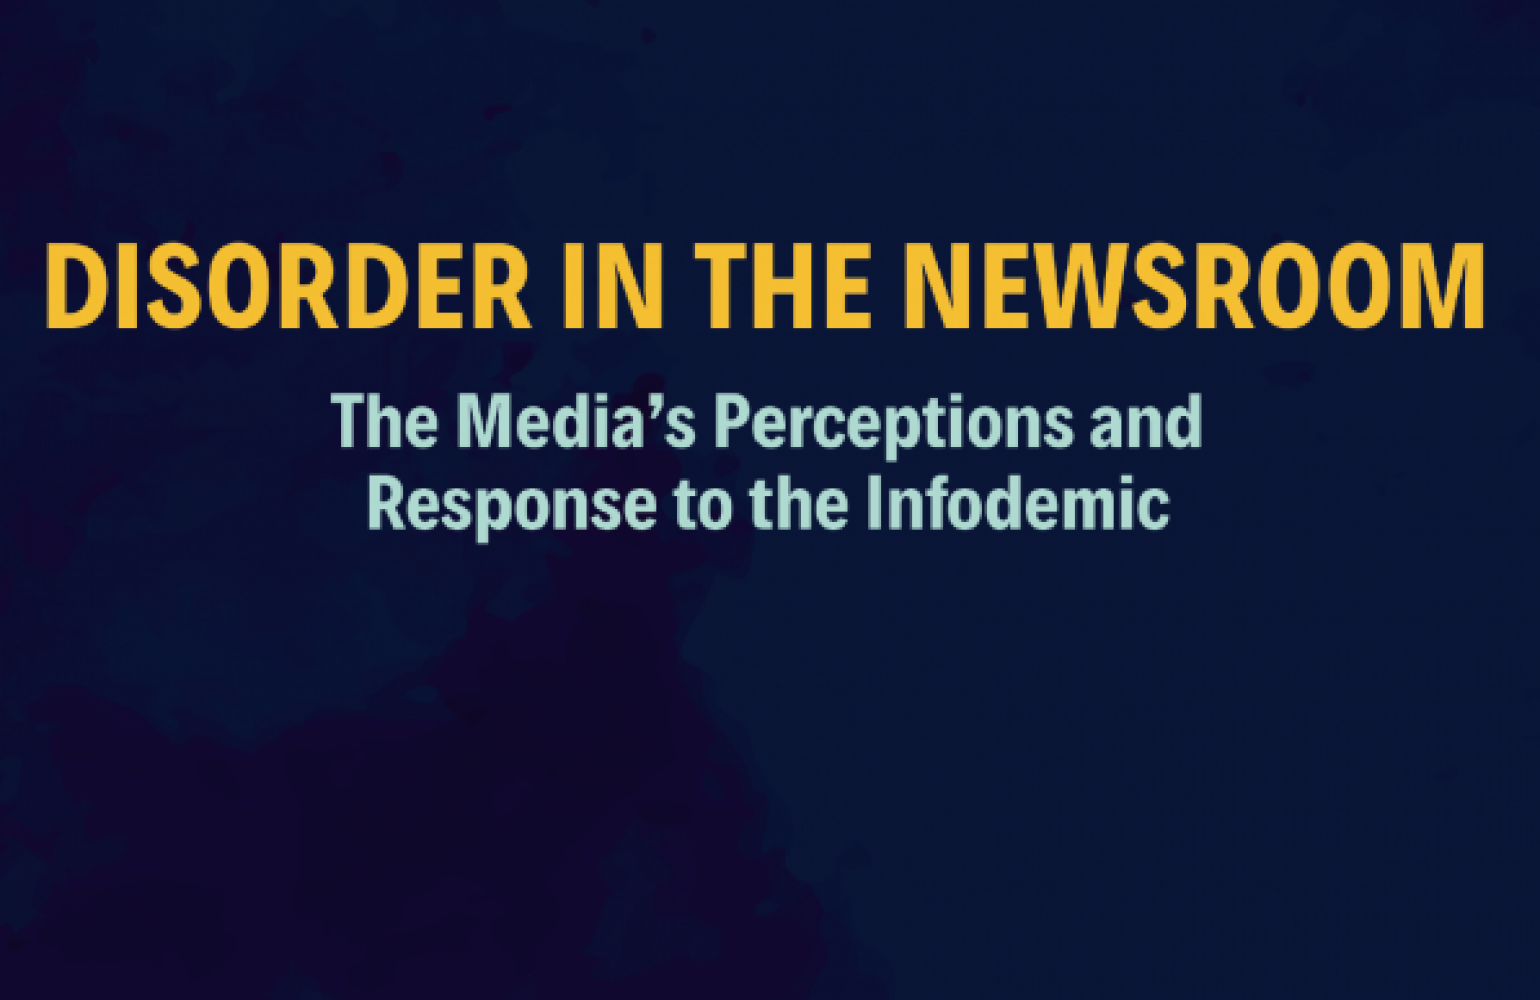 Launching 'Disorder in the Newsroom': A study by Media Matters for Democracy on journalists' perception of their ability to identify and counter misinformation